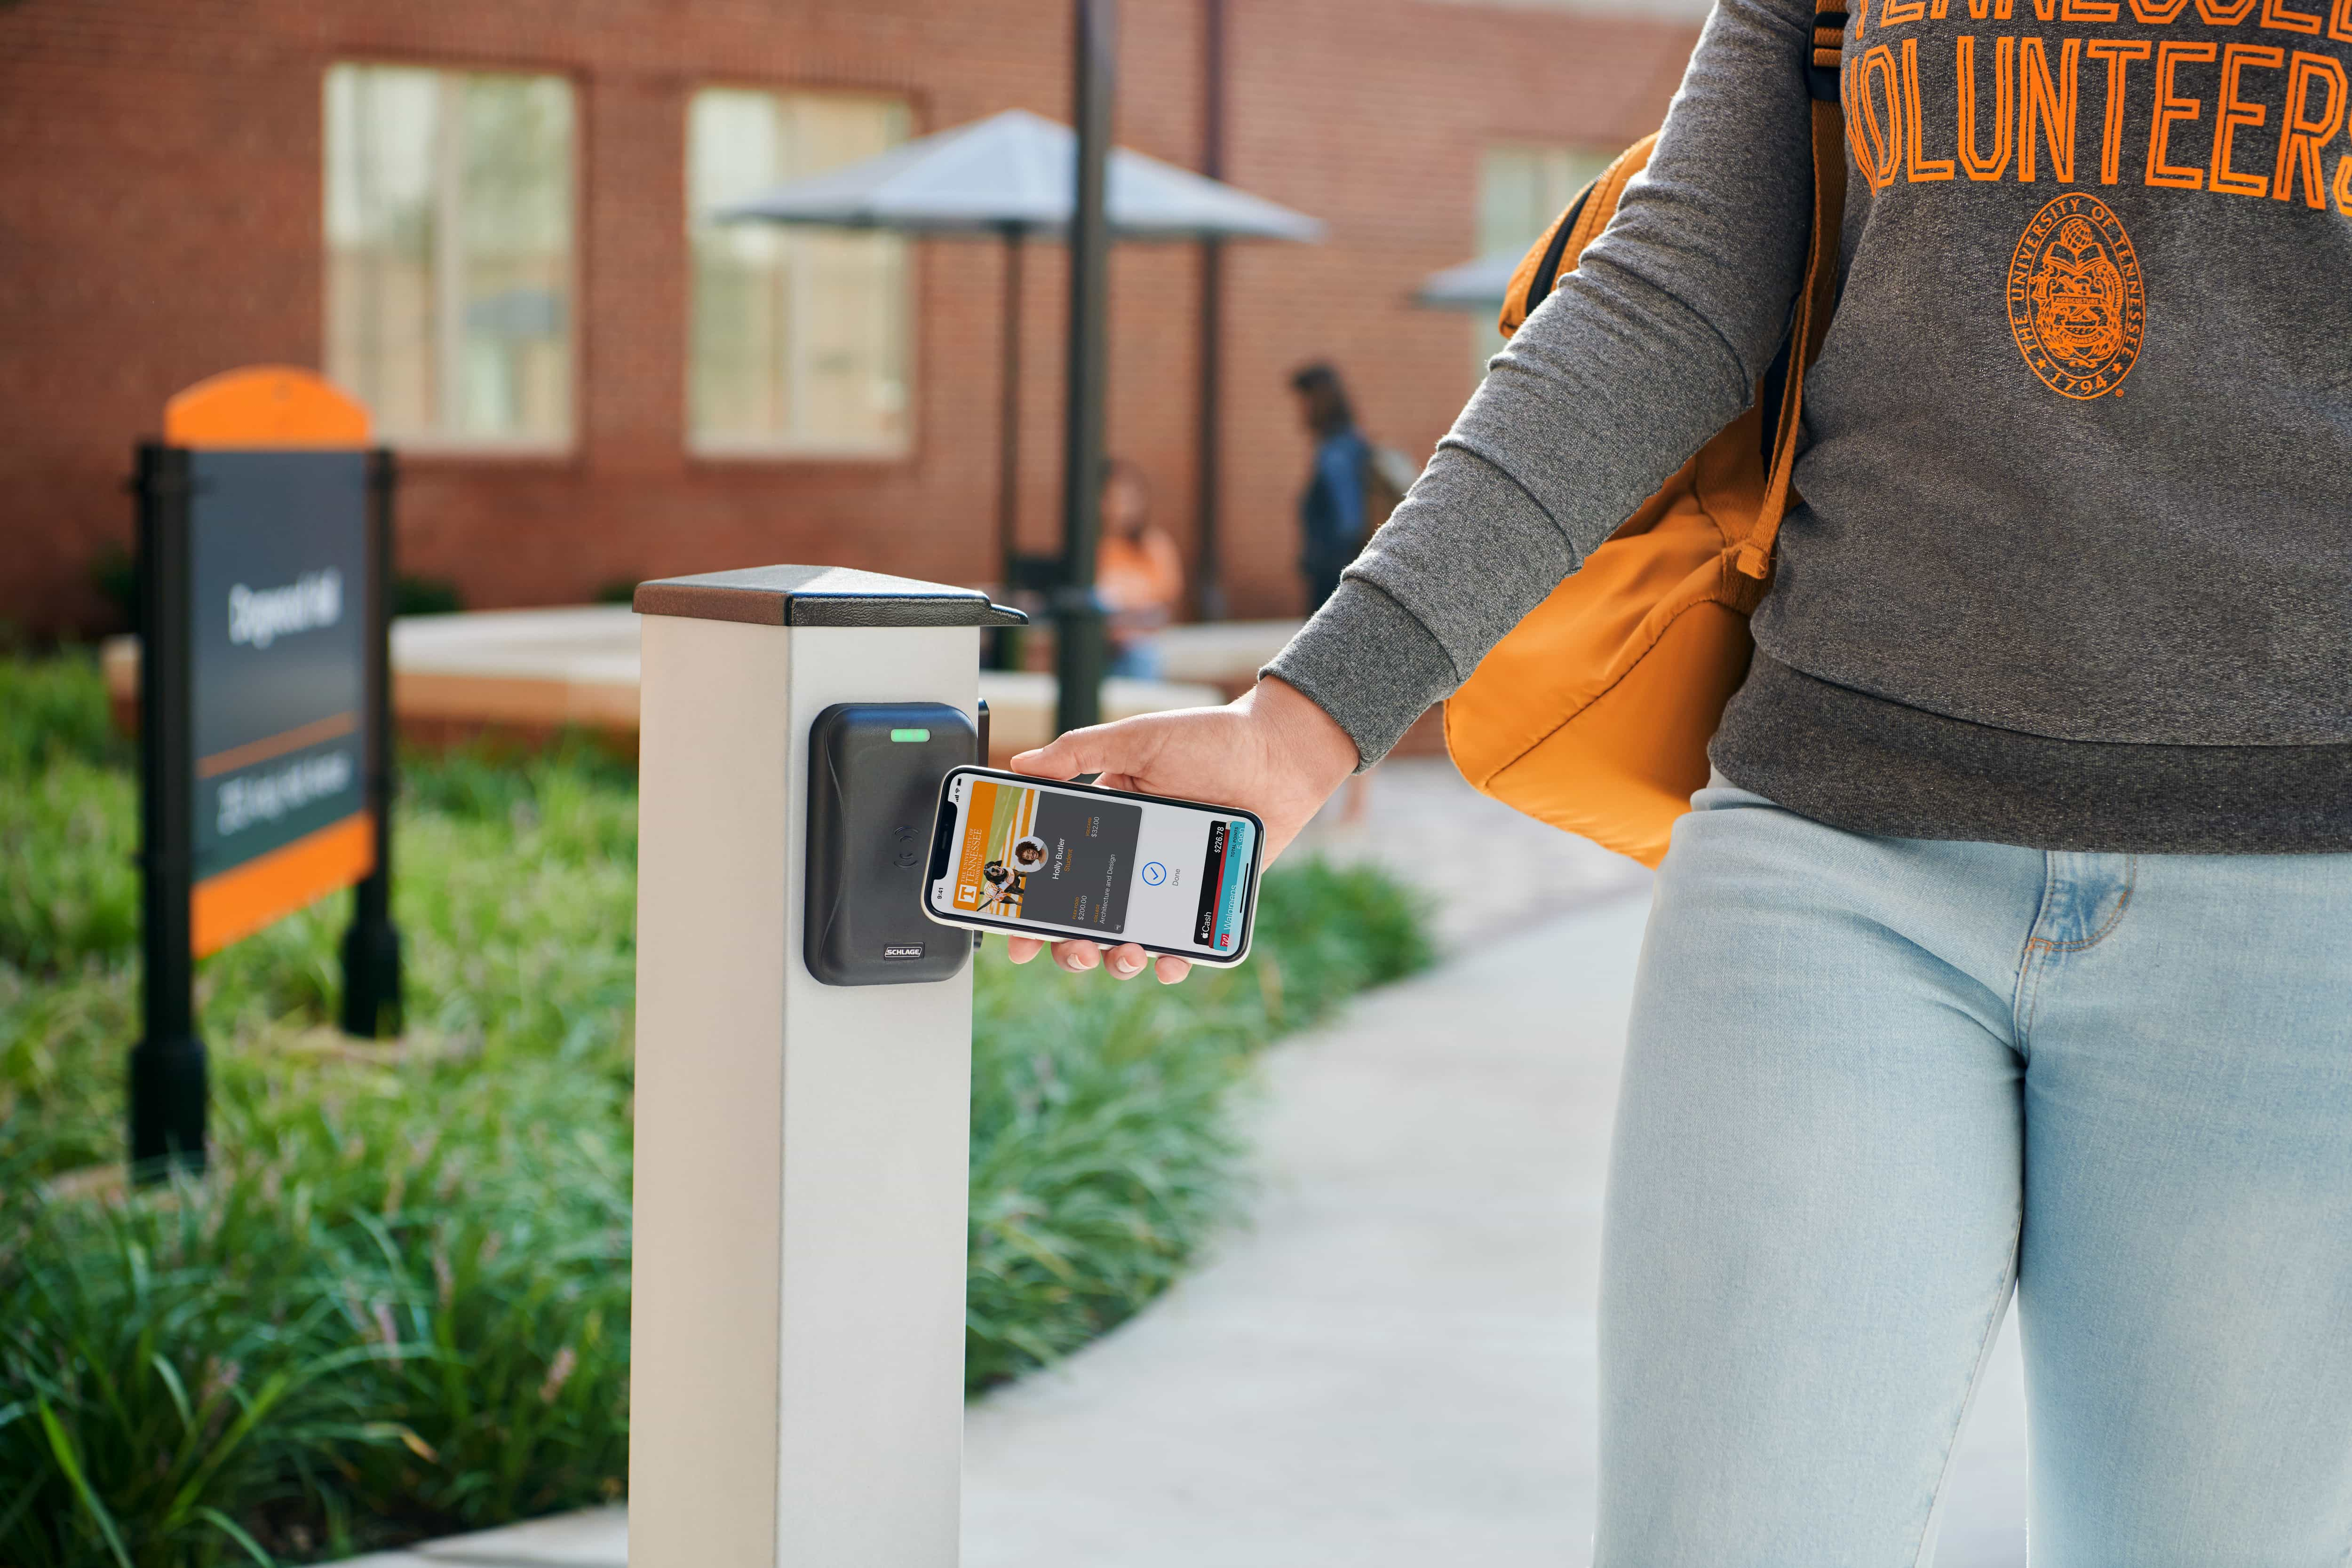 Contactless-student-ID